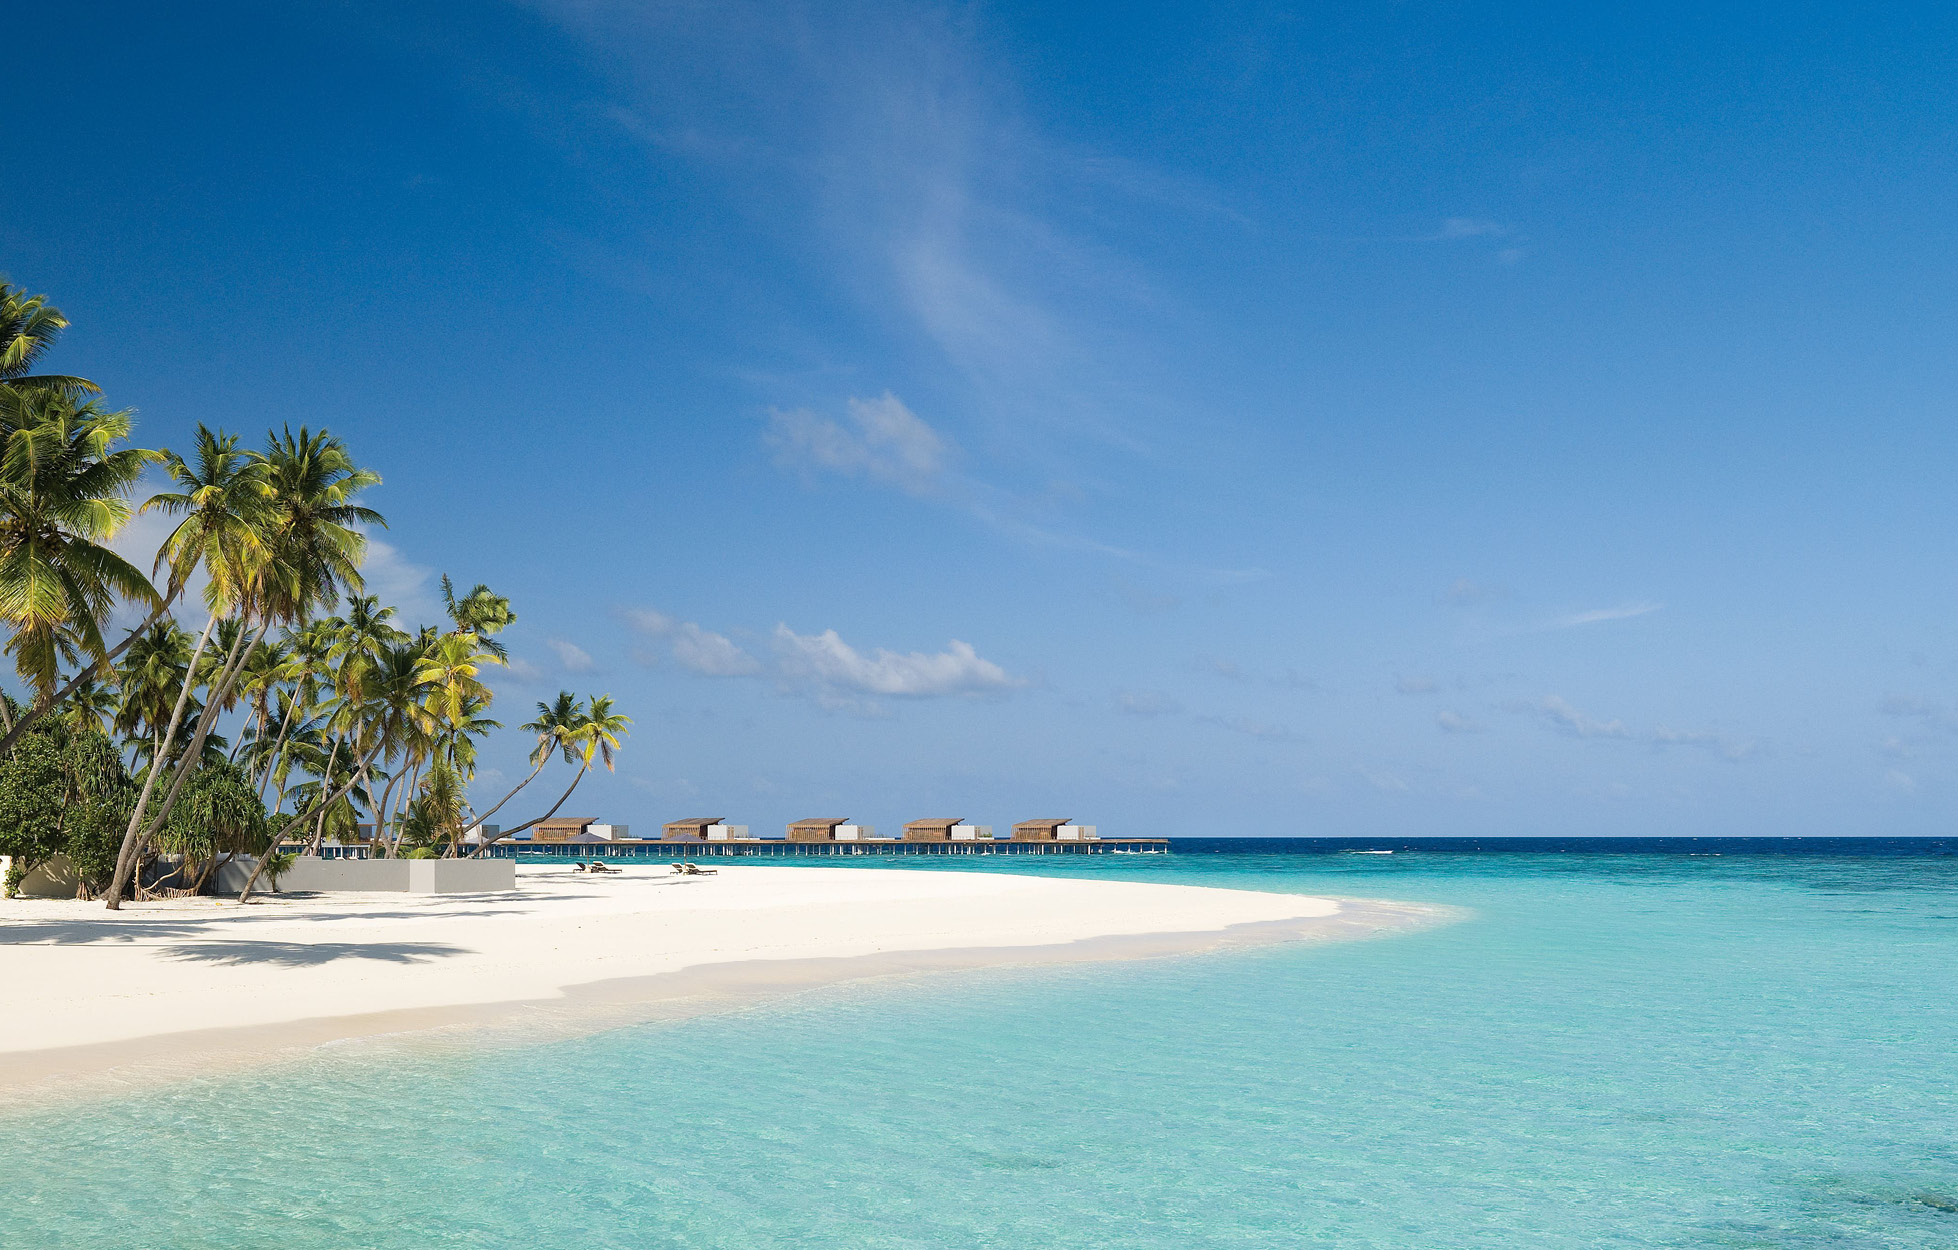 Park Hyatt, Maldives Hadahaa beach winter sun destination